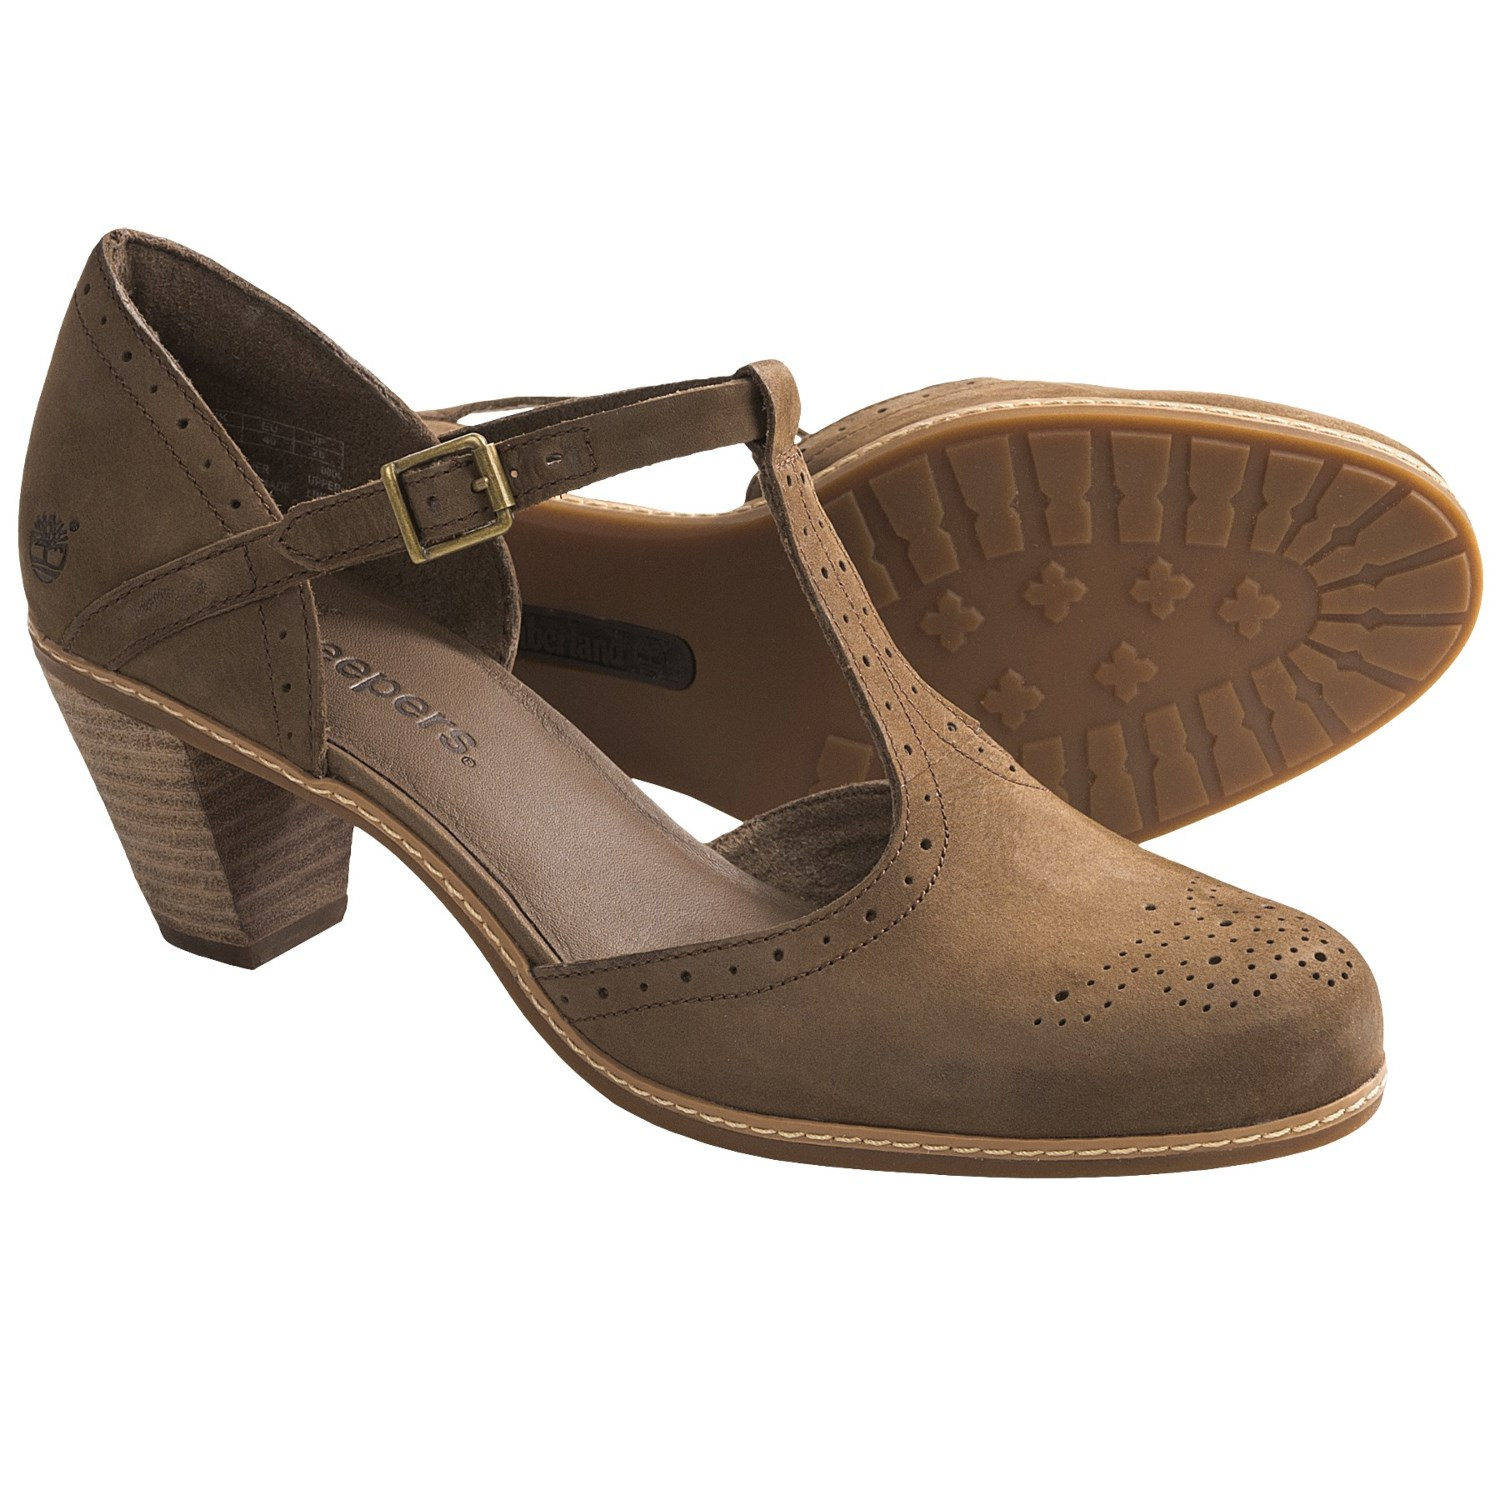 Timberland Shoes For Women Heels Timberland earthkeepers